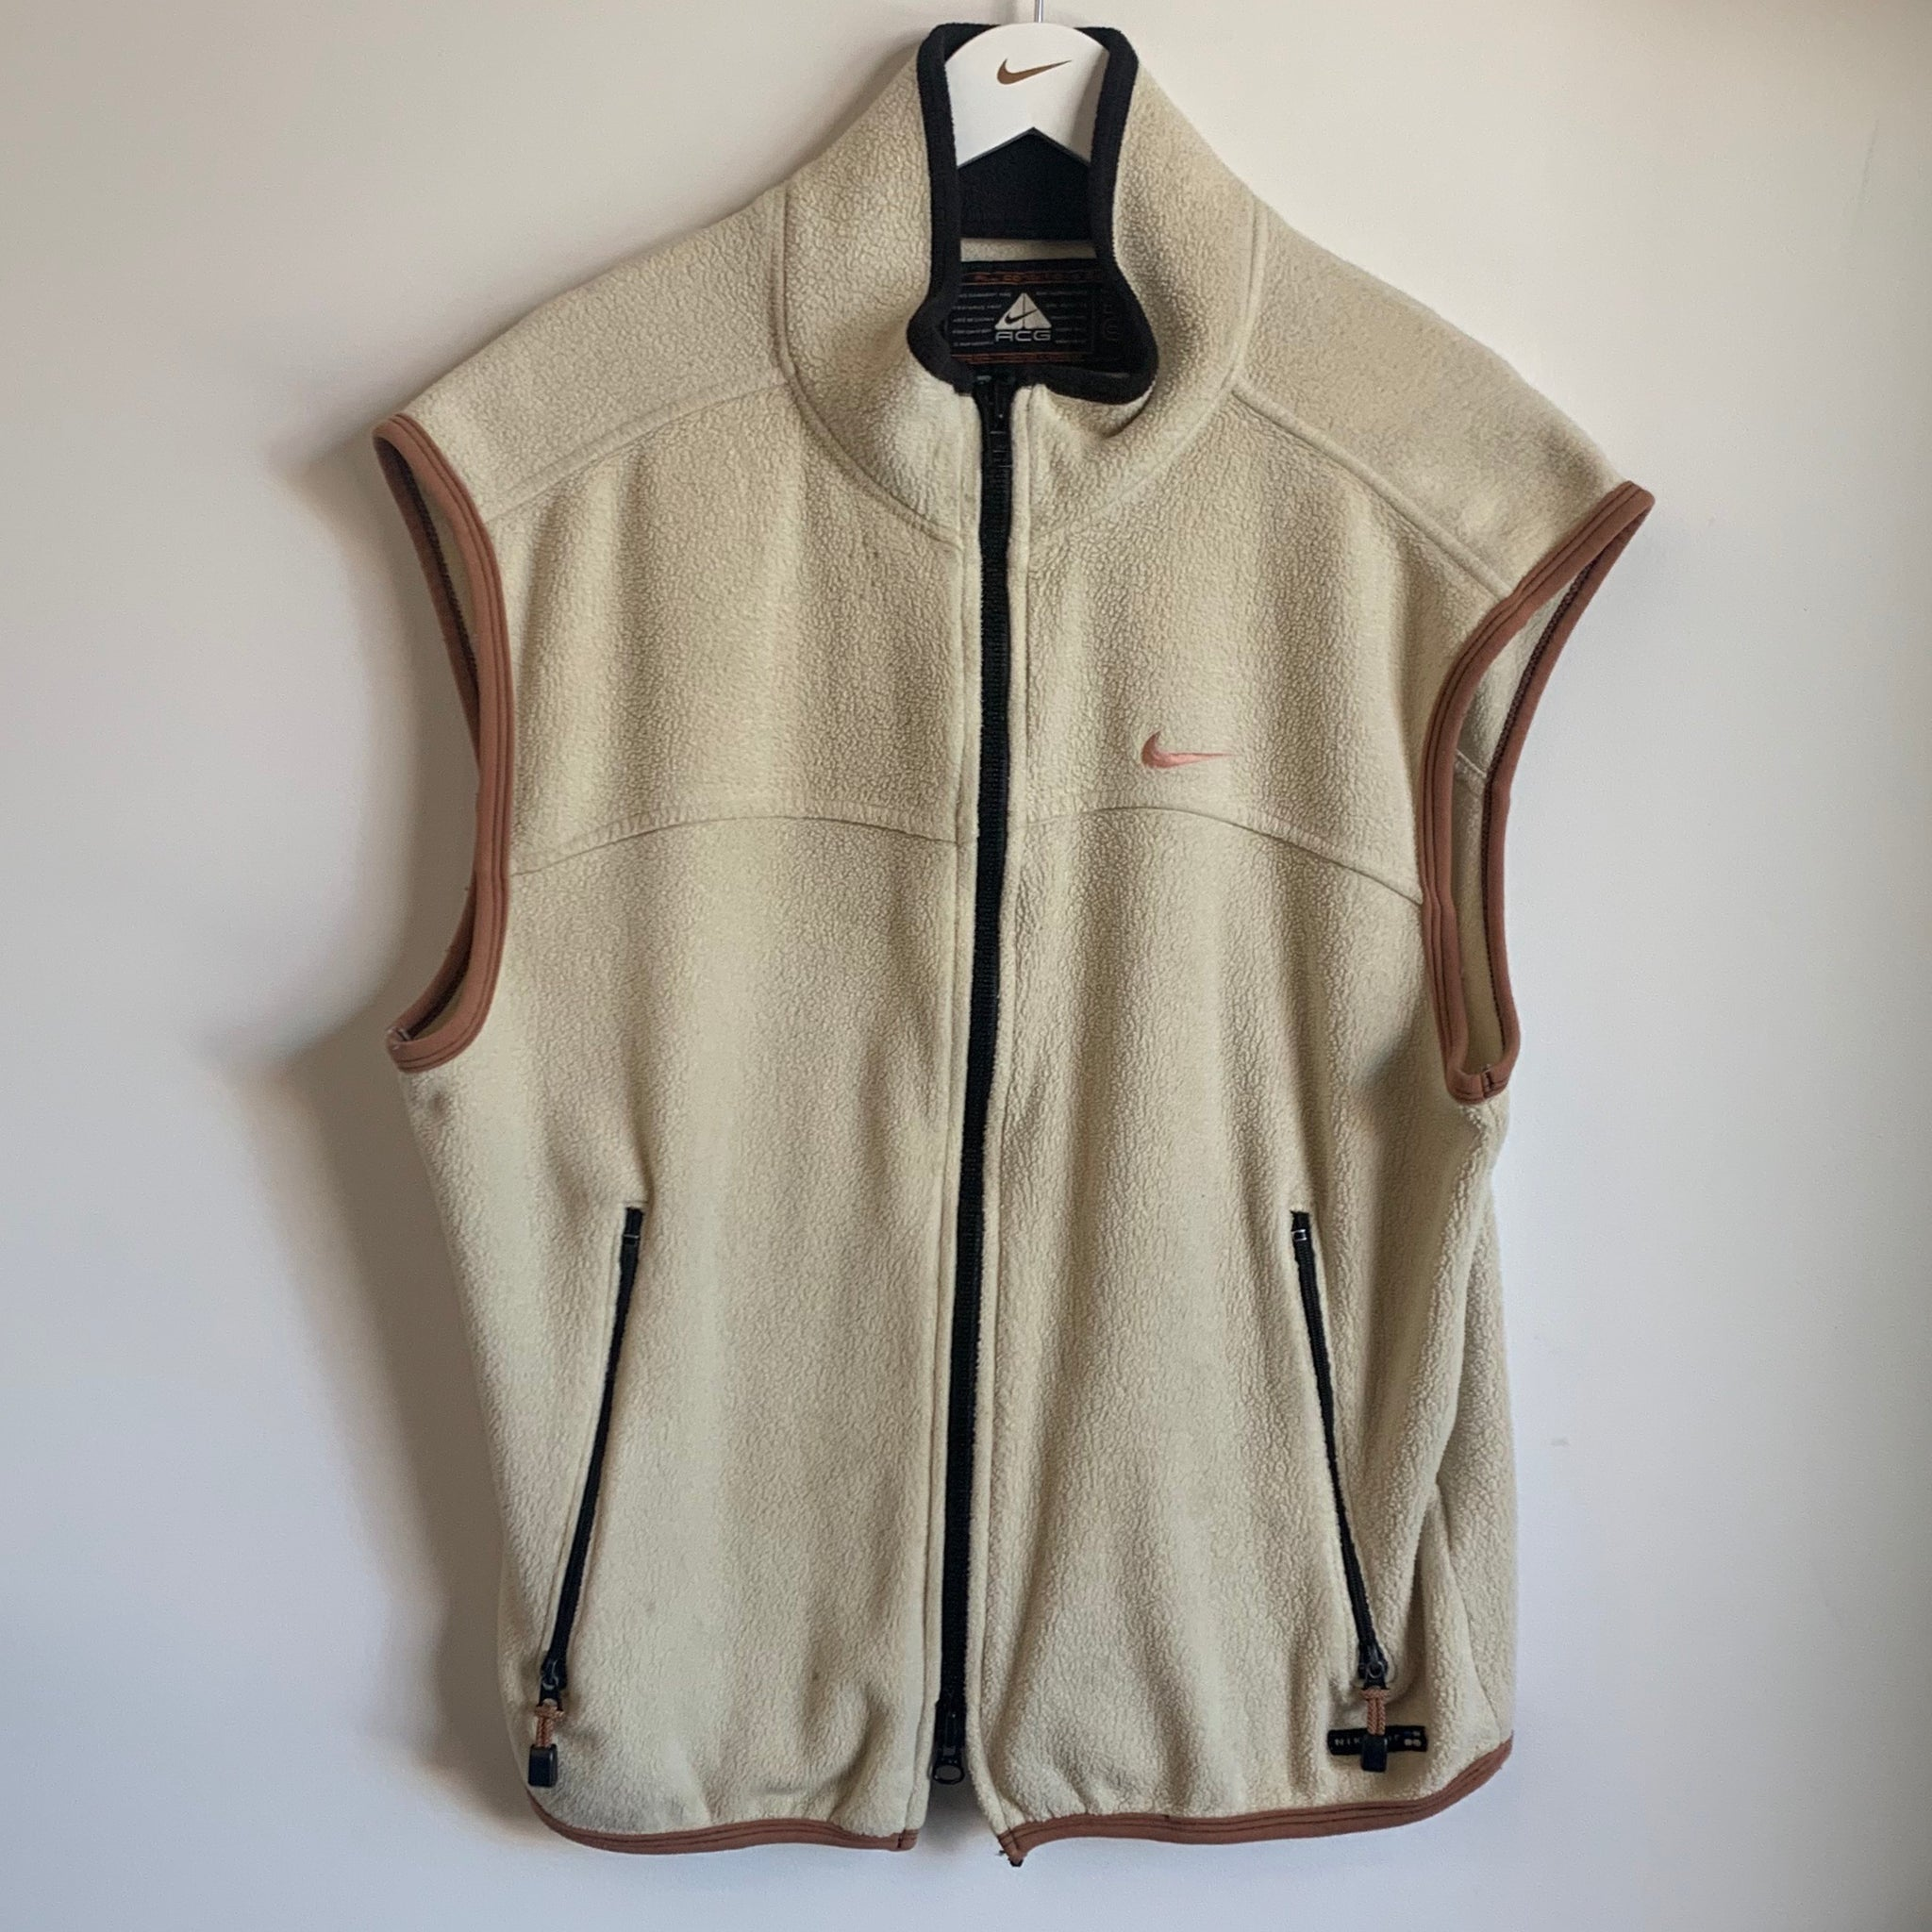 Nike ACG Tan Fleece Vest